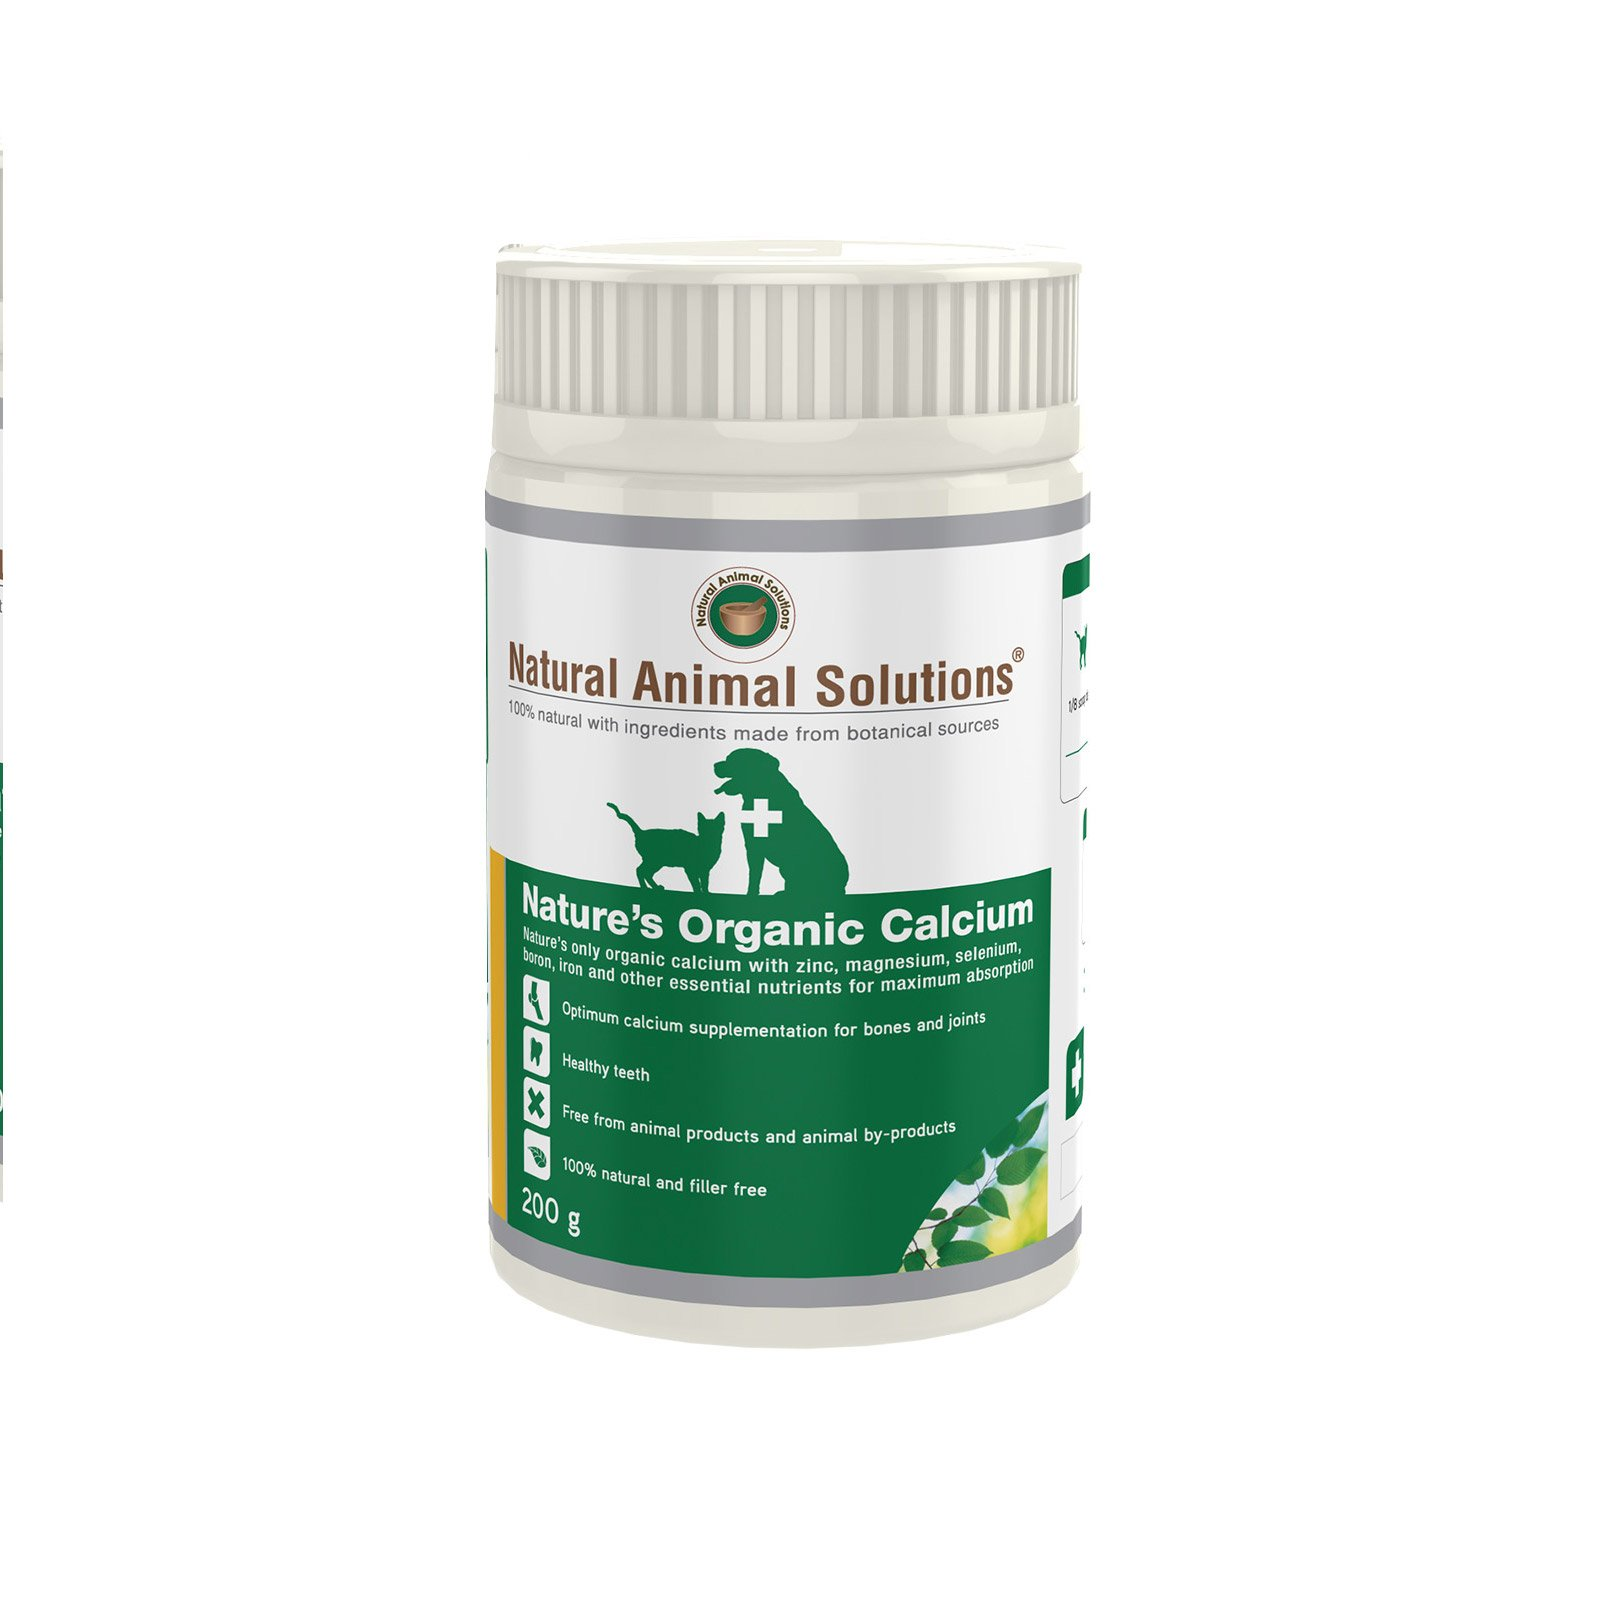 Natural Animal Solutions - Nature's Organic Calcium